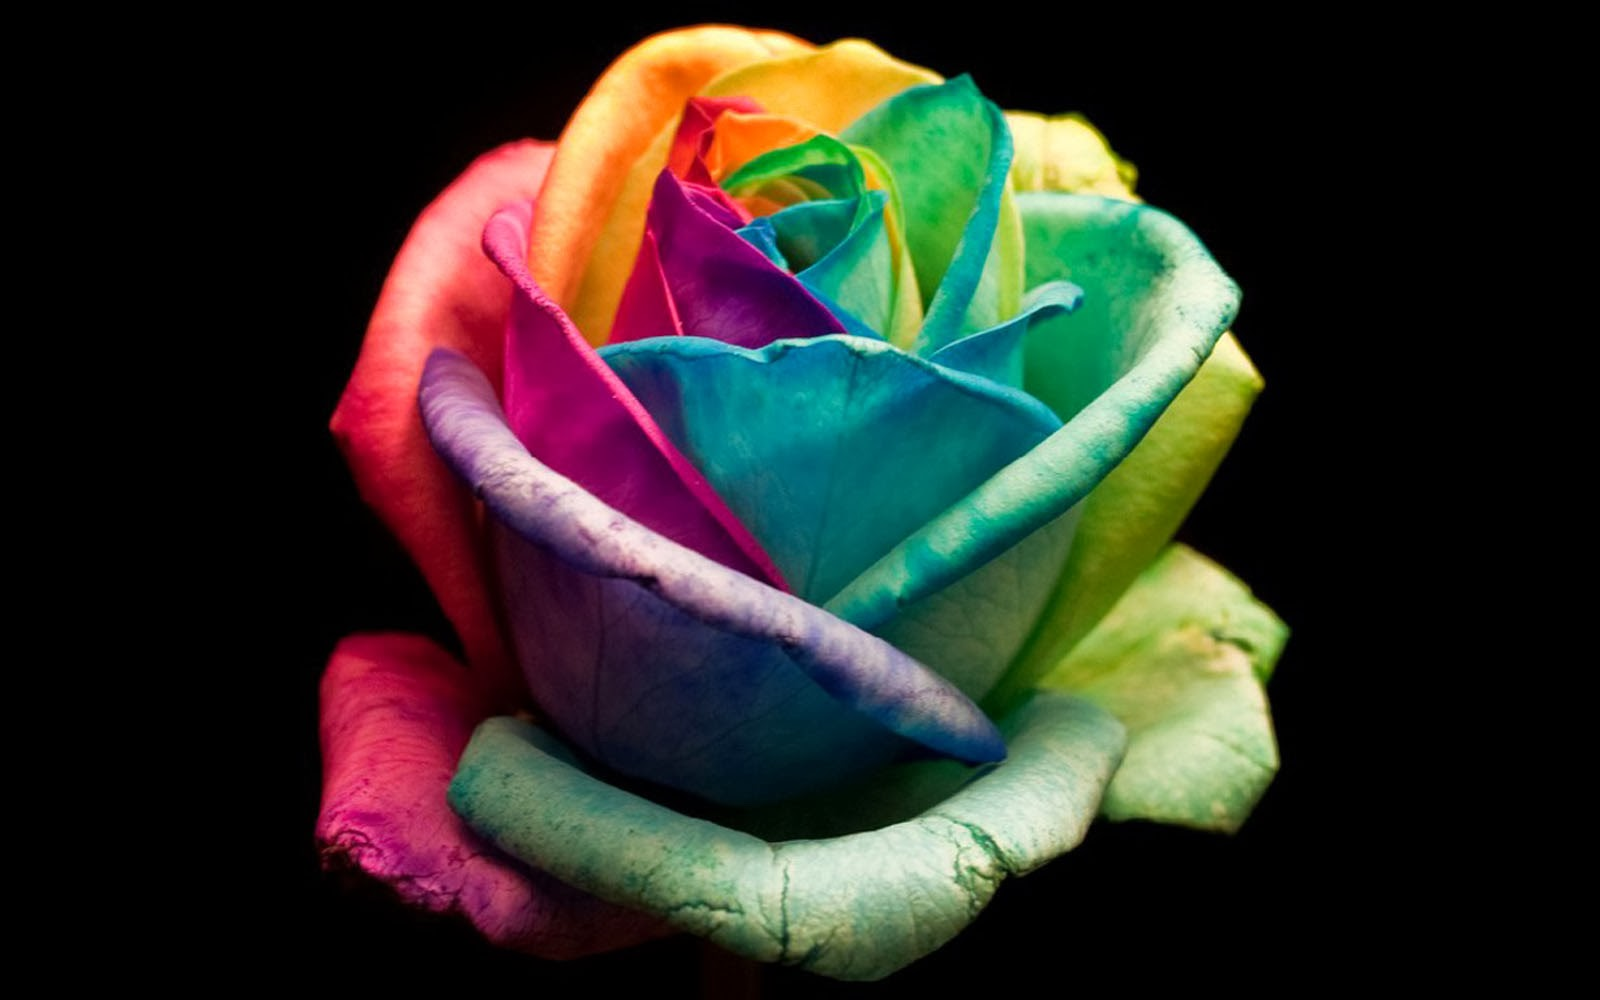 clovisso wallpaper gallery colorful rose wallpapers